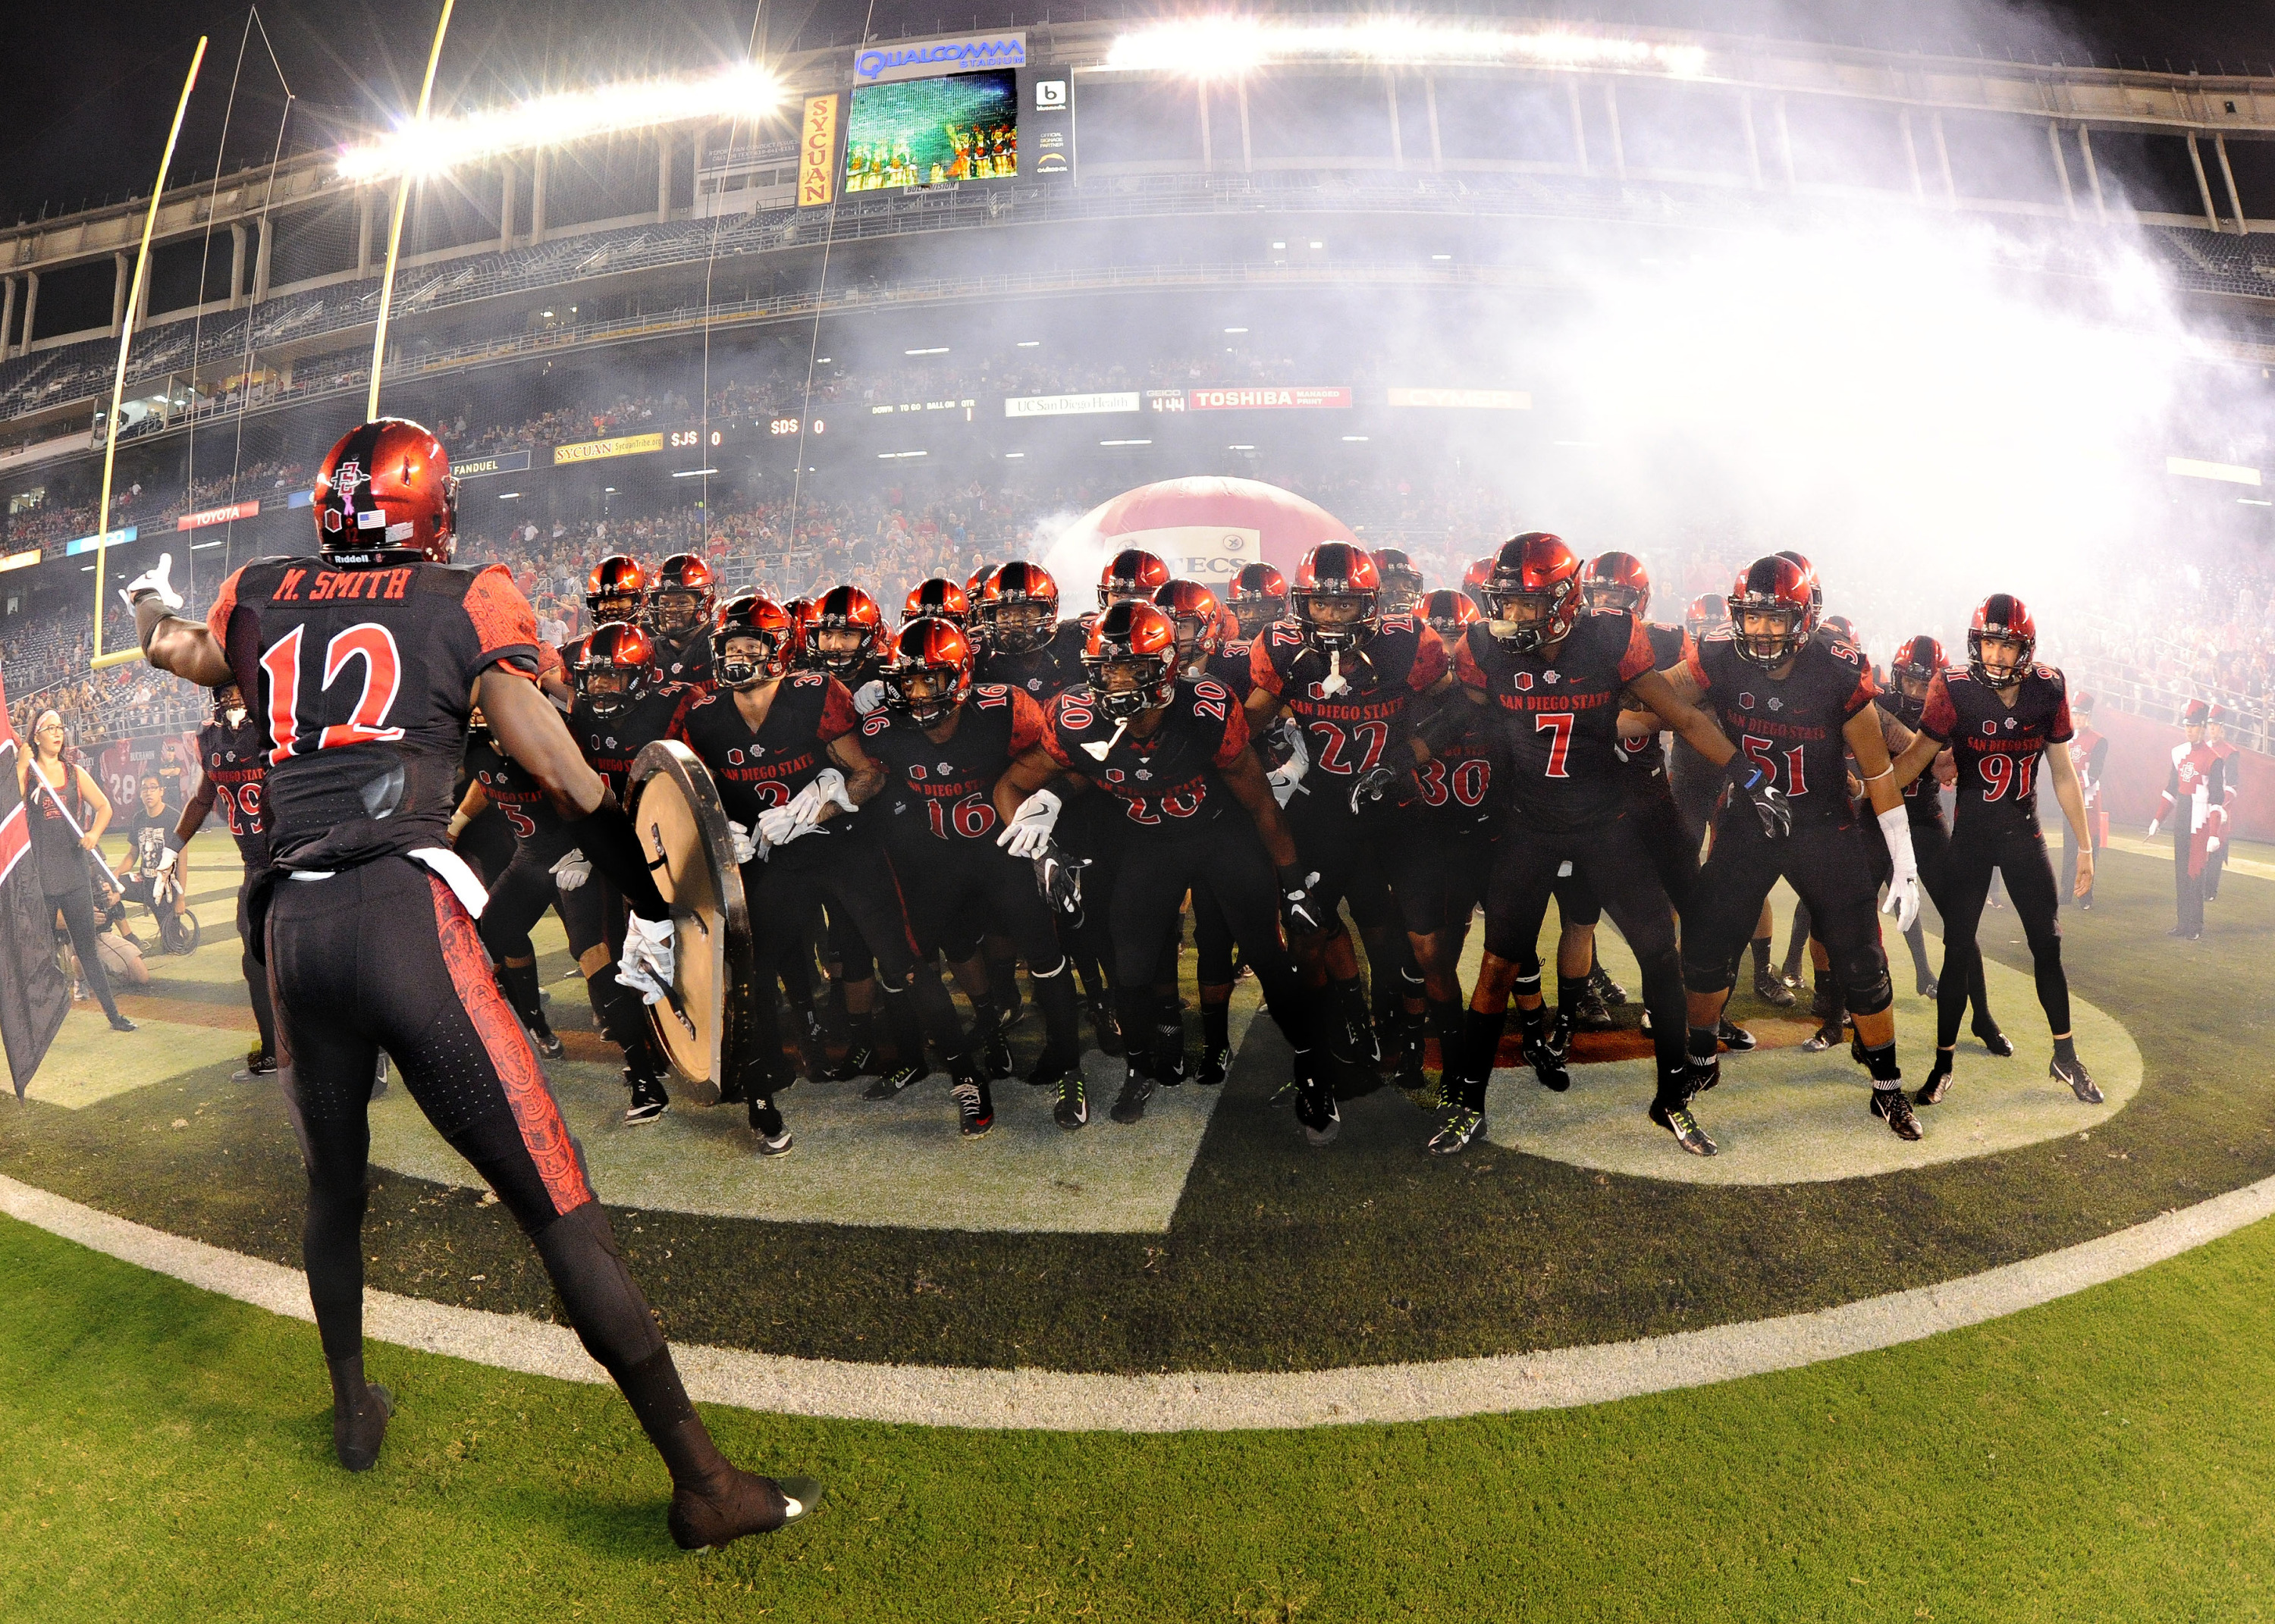 The Aztecs travel to Utah state for their third straight Friday game.